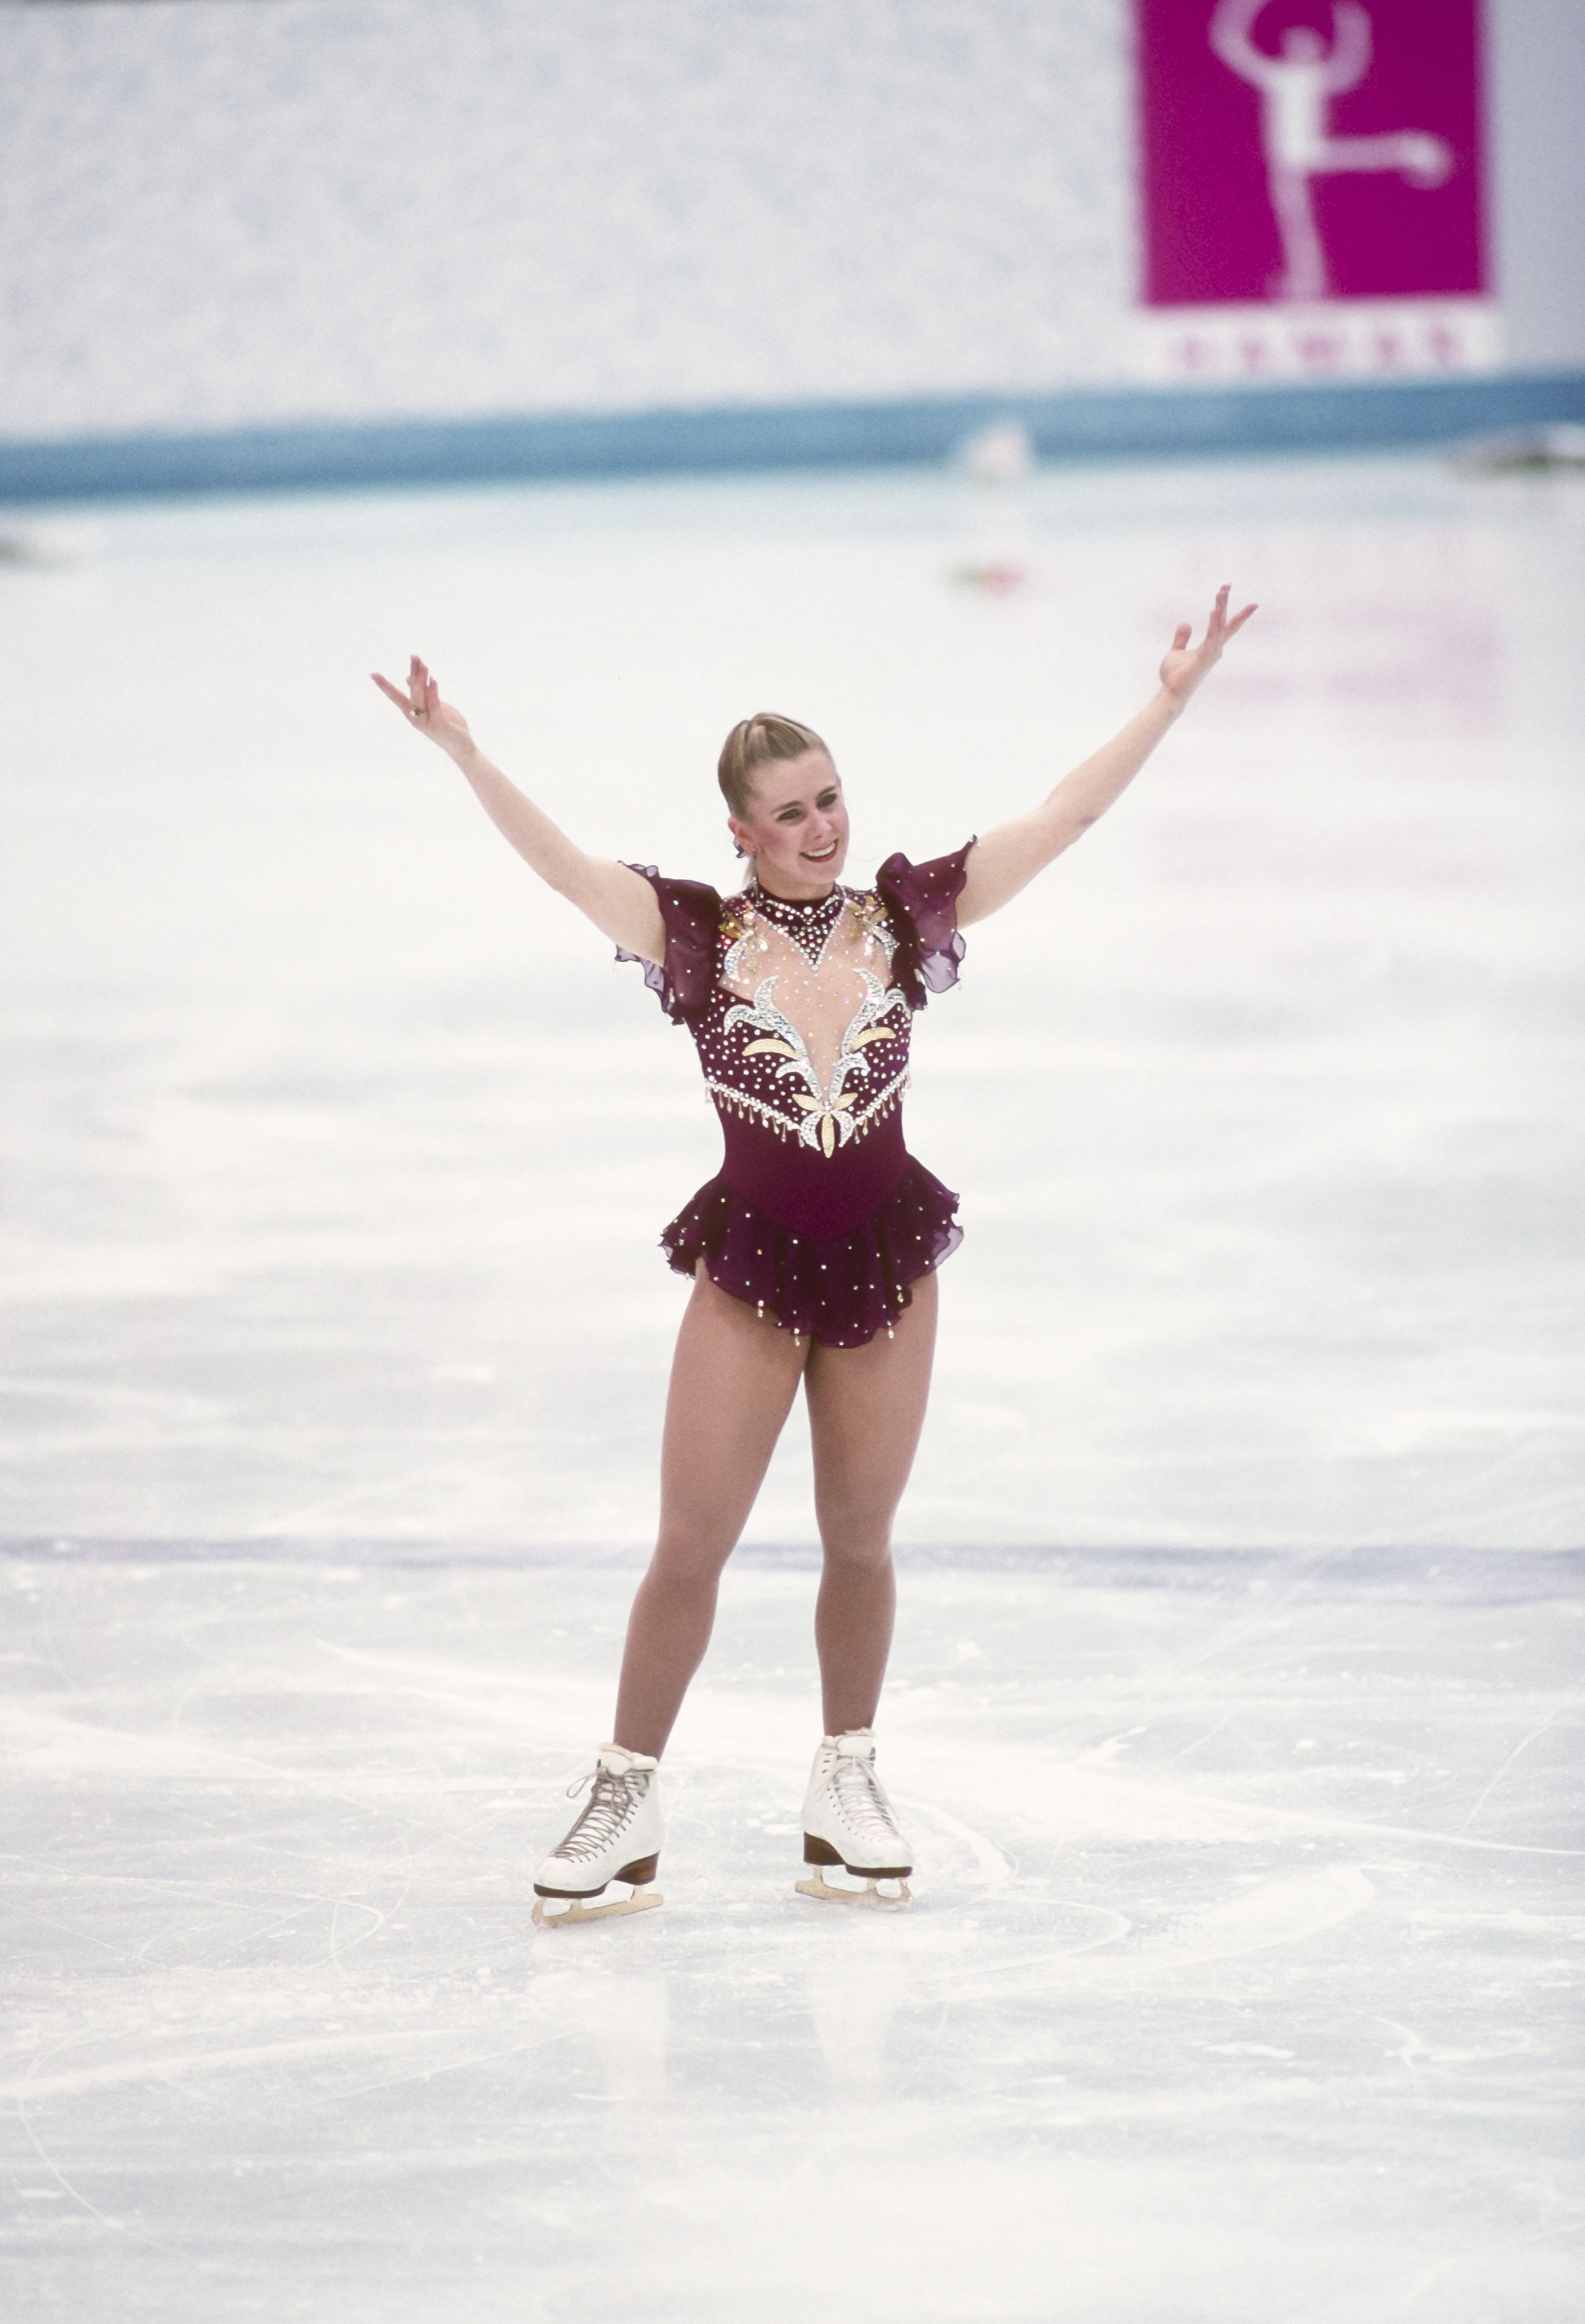 Best ass in figure skating